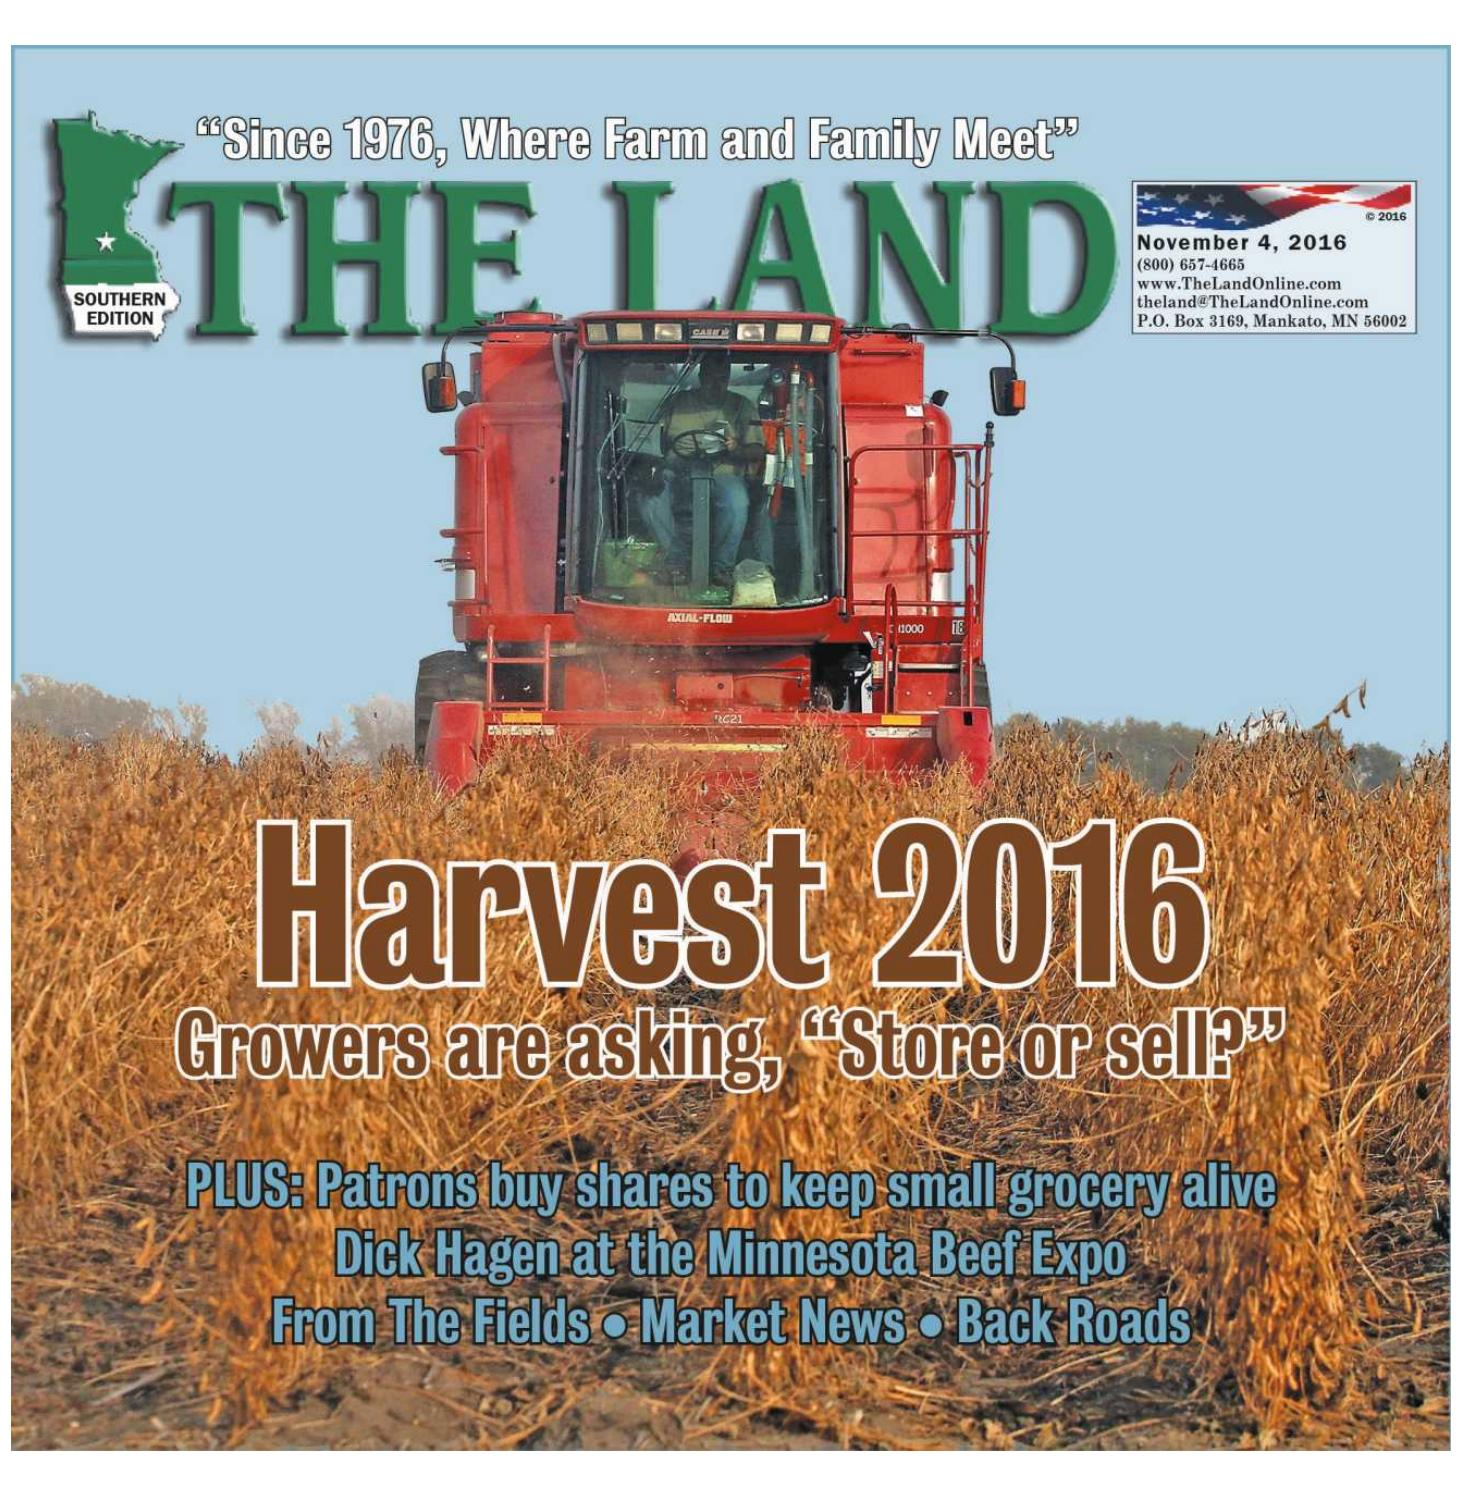 THE LAND Nov 4 2016 Southern Edition by The Land issuu